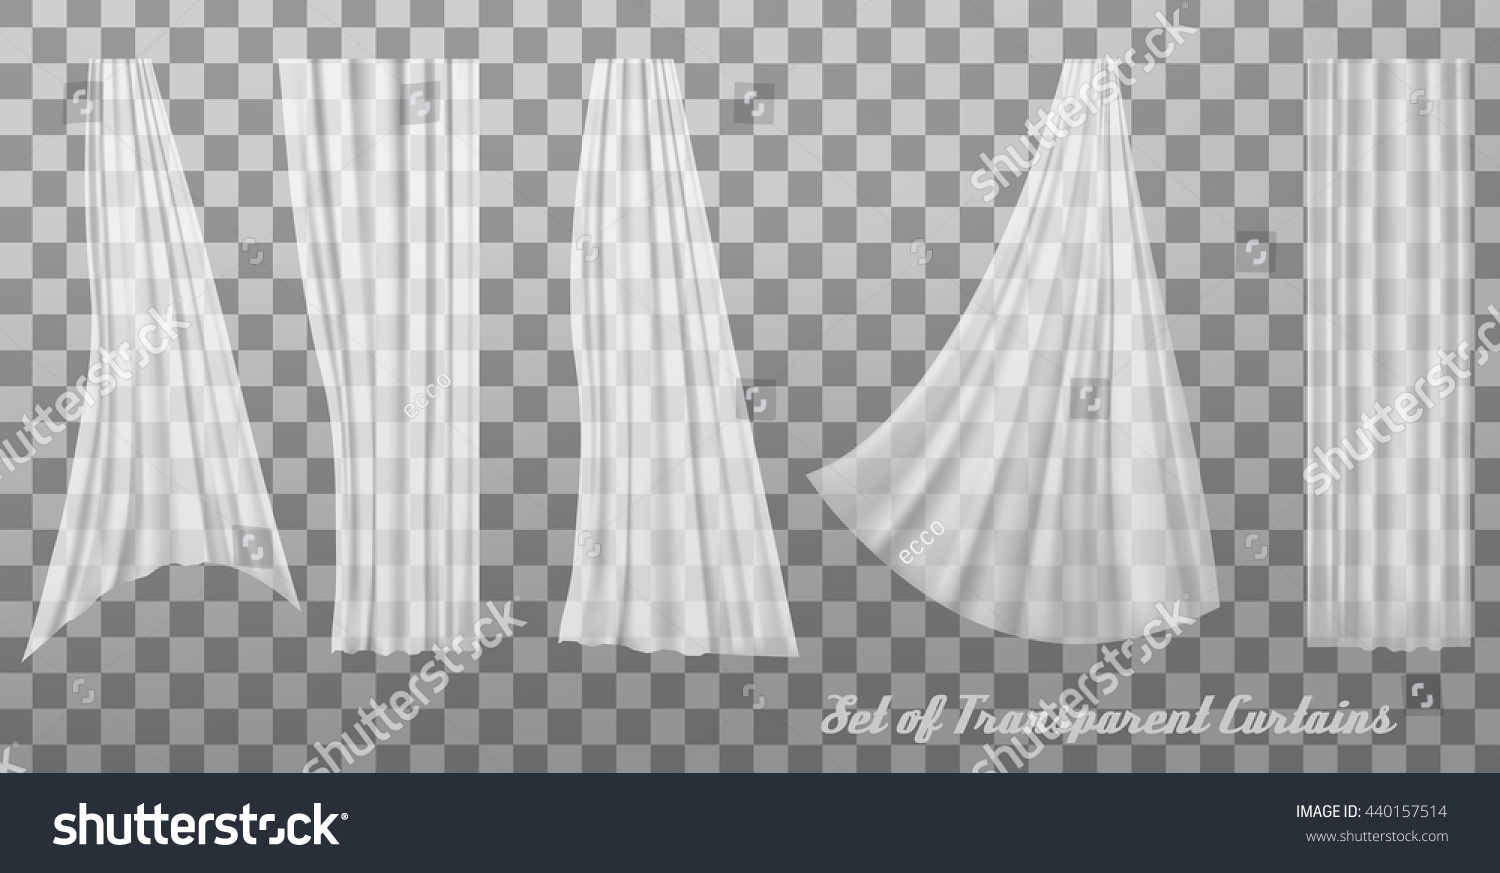 Big event red curtains with spotlight stock photo getty images - Collection Of Transparent Curtains Vector